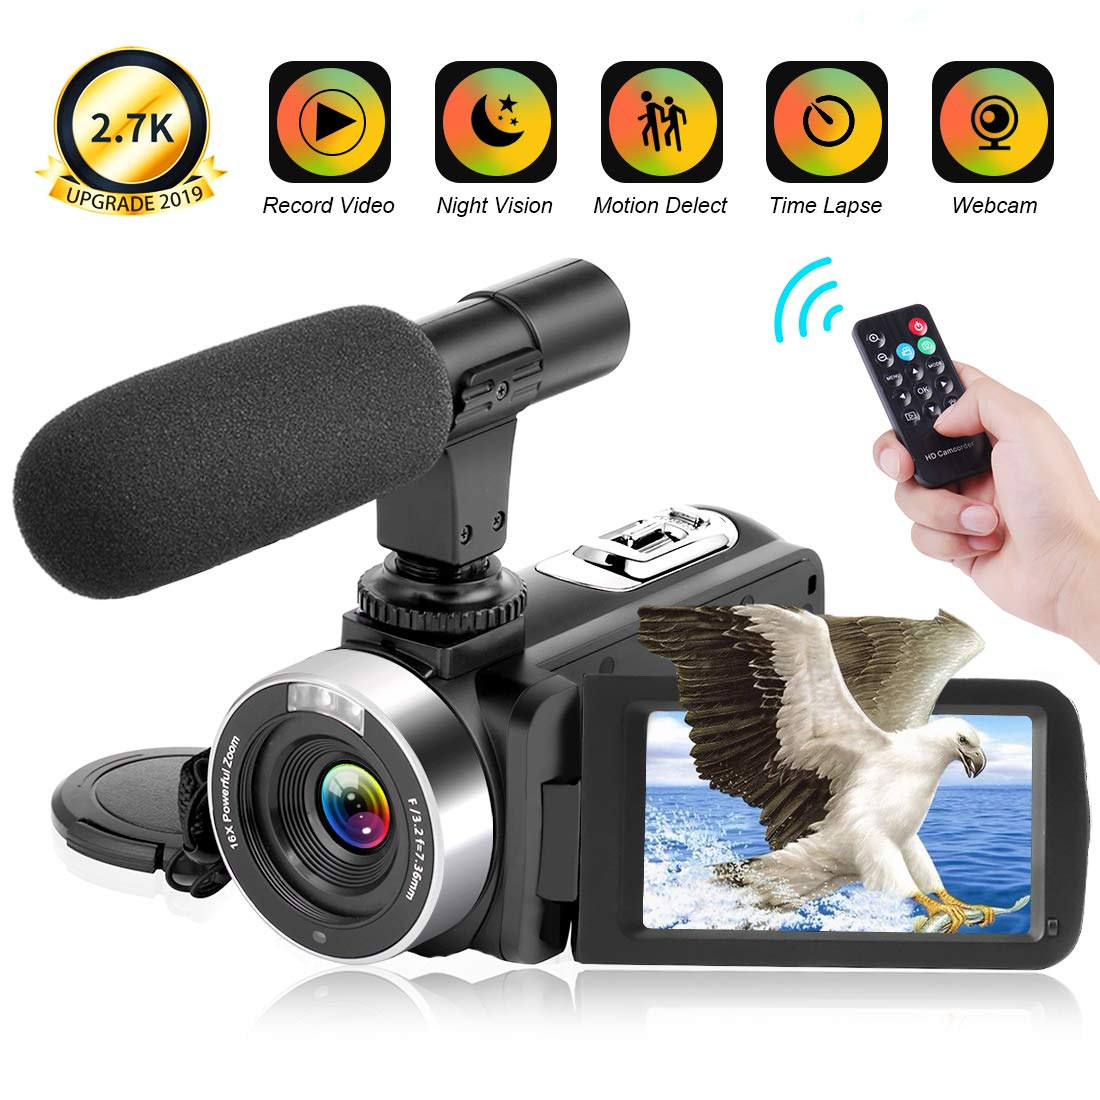 Video Camera 2.7K Camcorder 30FPS 30MP Ultra HD 16X Digital Zoom Camera 3.0 inch Touch Screen IR Night Vision Vlogging Camera for Youtube with Remote and Microphone Webcam Recorder